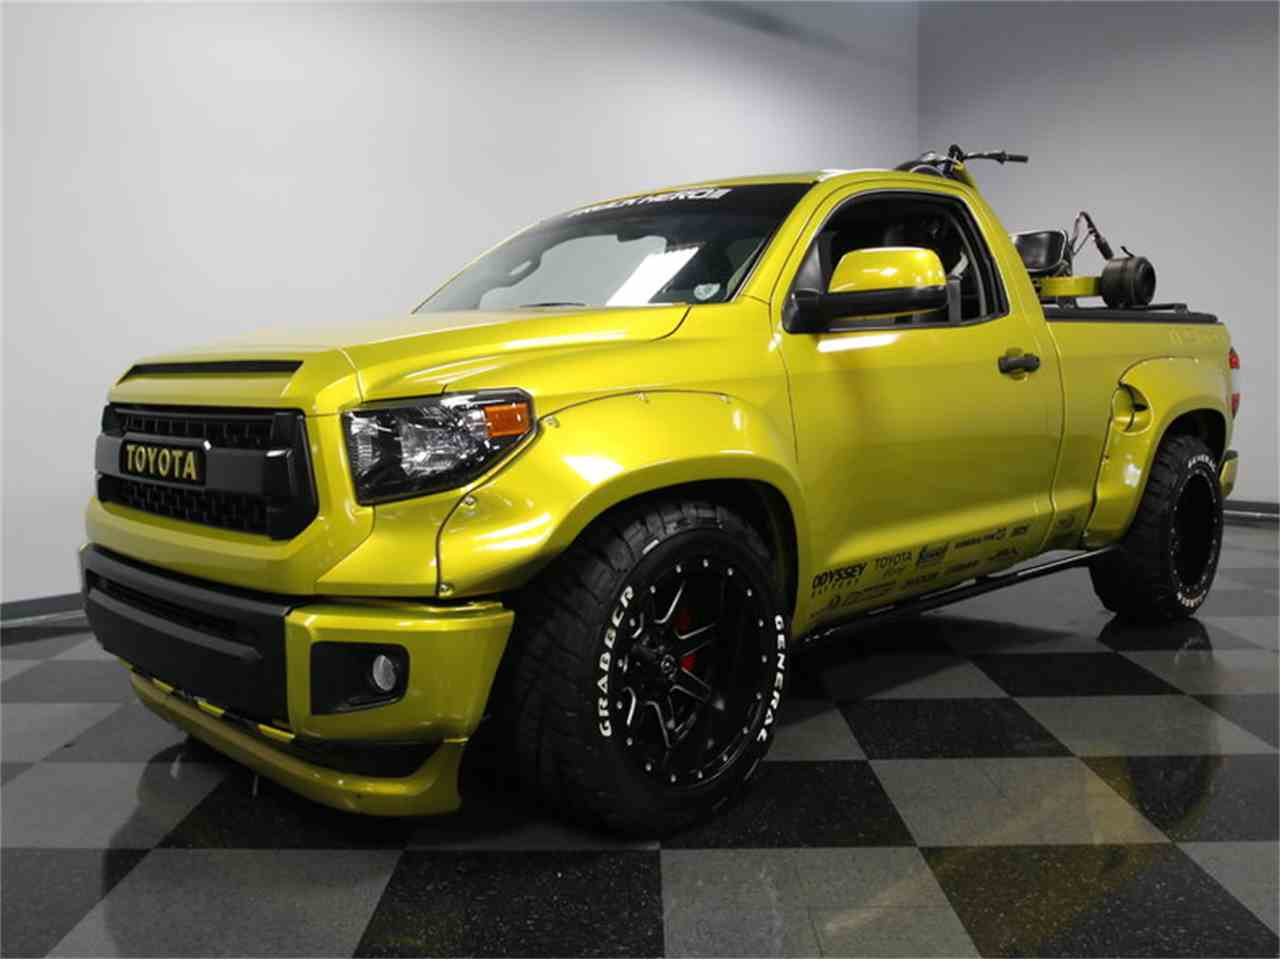 2008 toyota tundra trd supercharged for sale classiccars. Black Bedroom Furniture Sets. Home Design Ideas